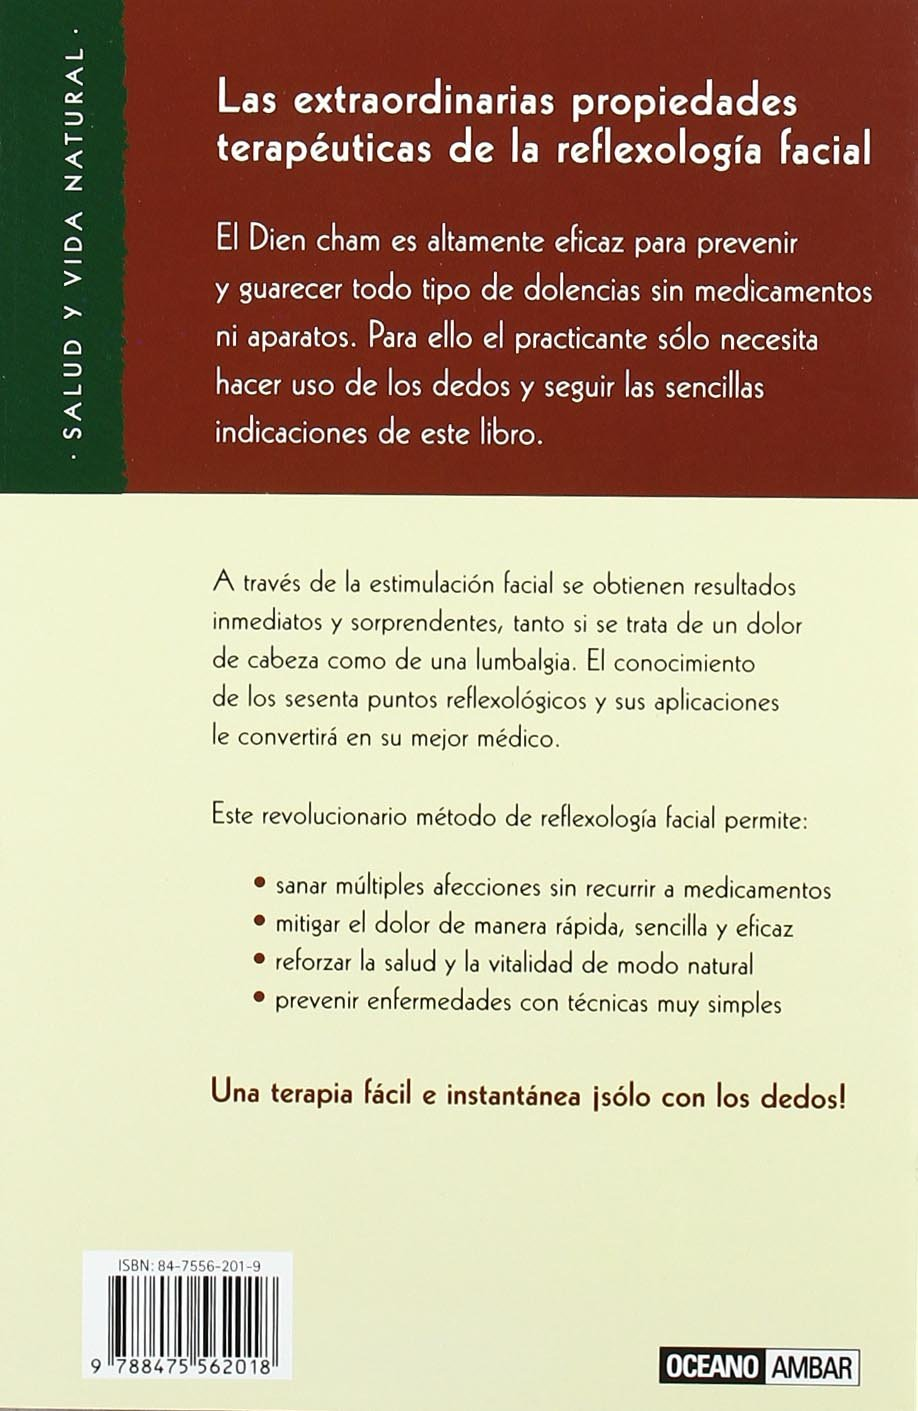 Dien Cham (Salud y vida natural): Amazon.es: Nhuan Le Quang, Marie France Muller: Libros